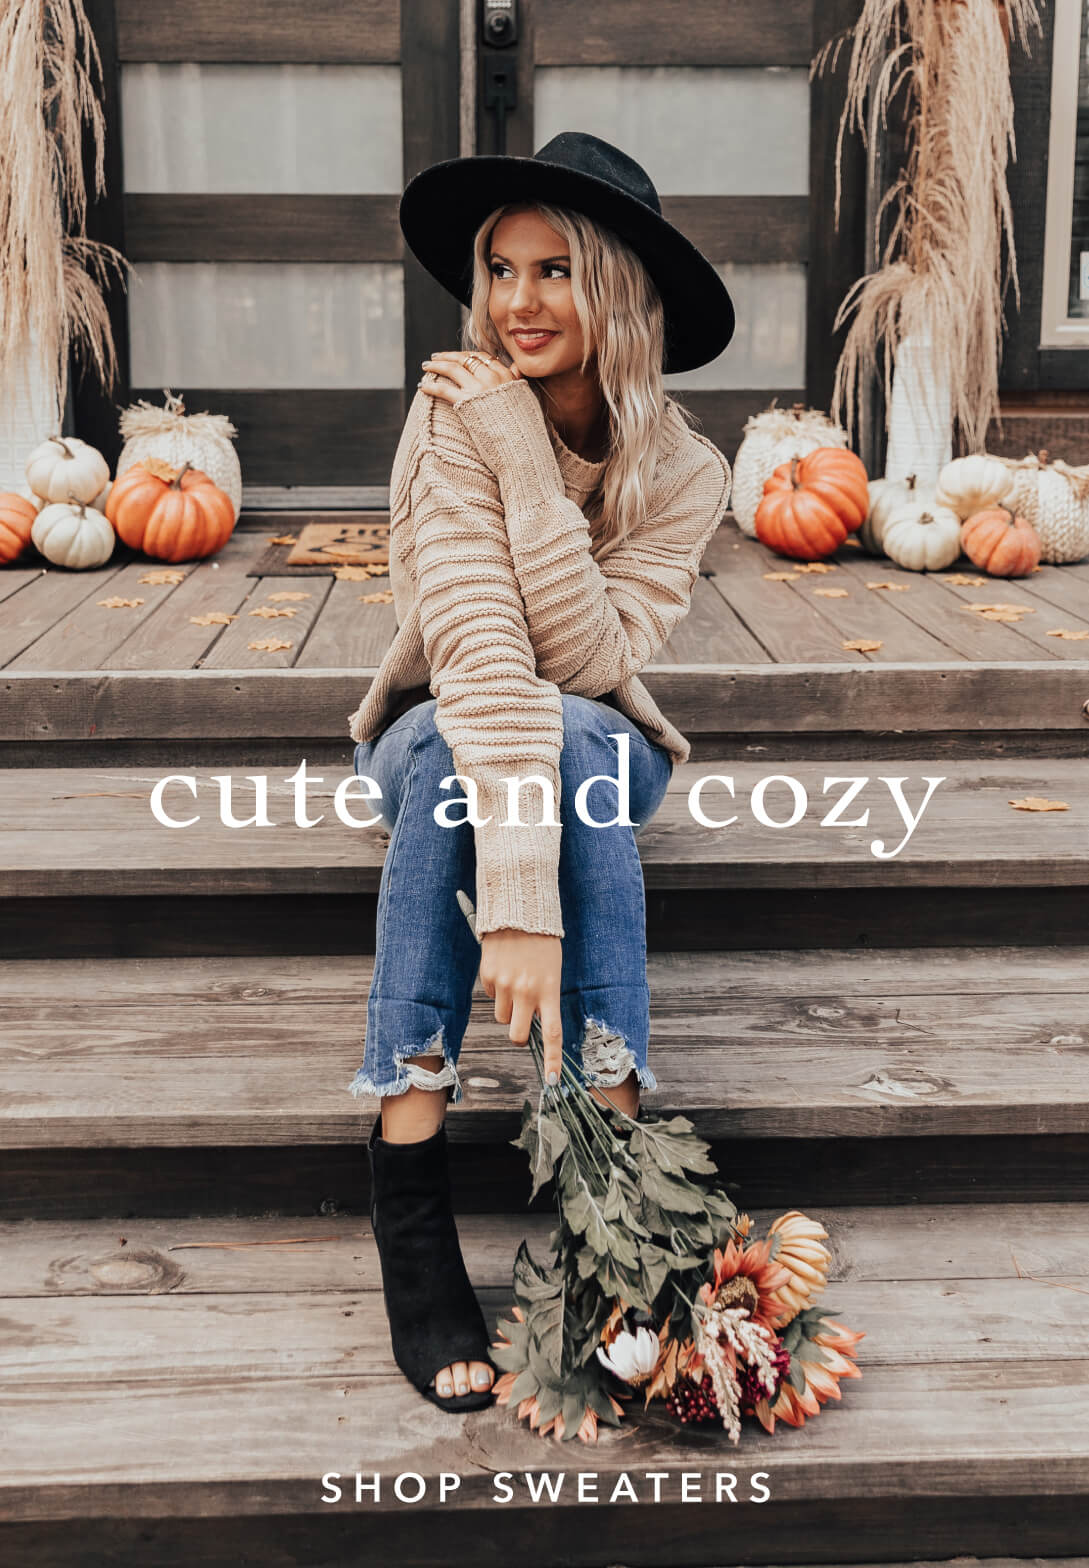 Shop Sweaters Collection